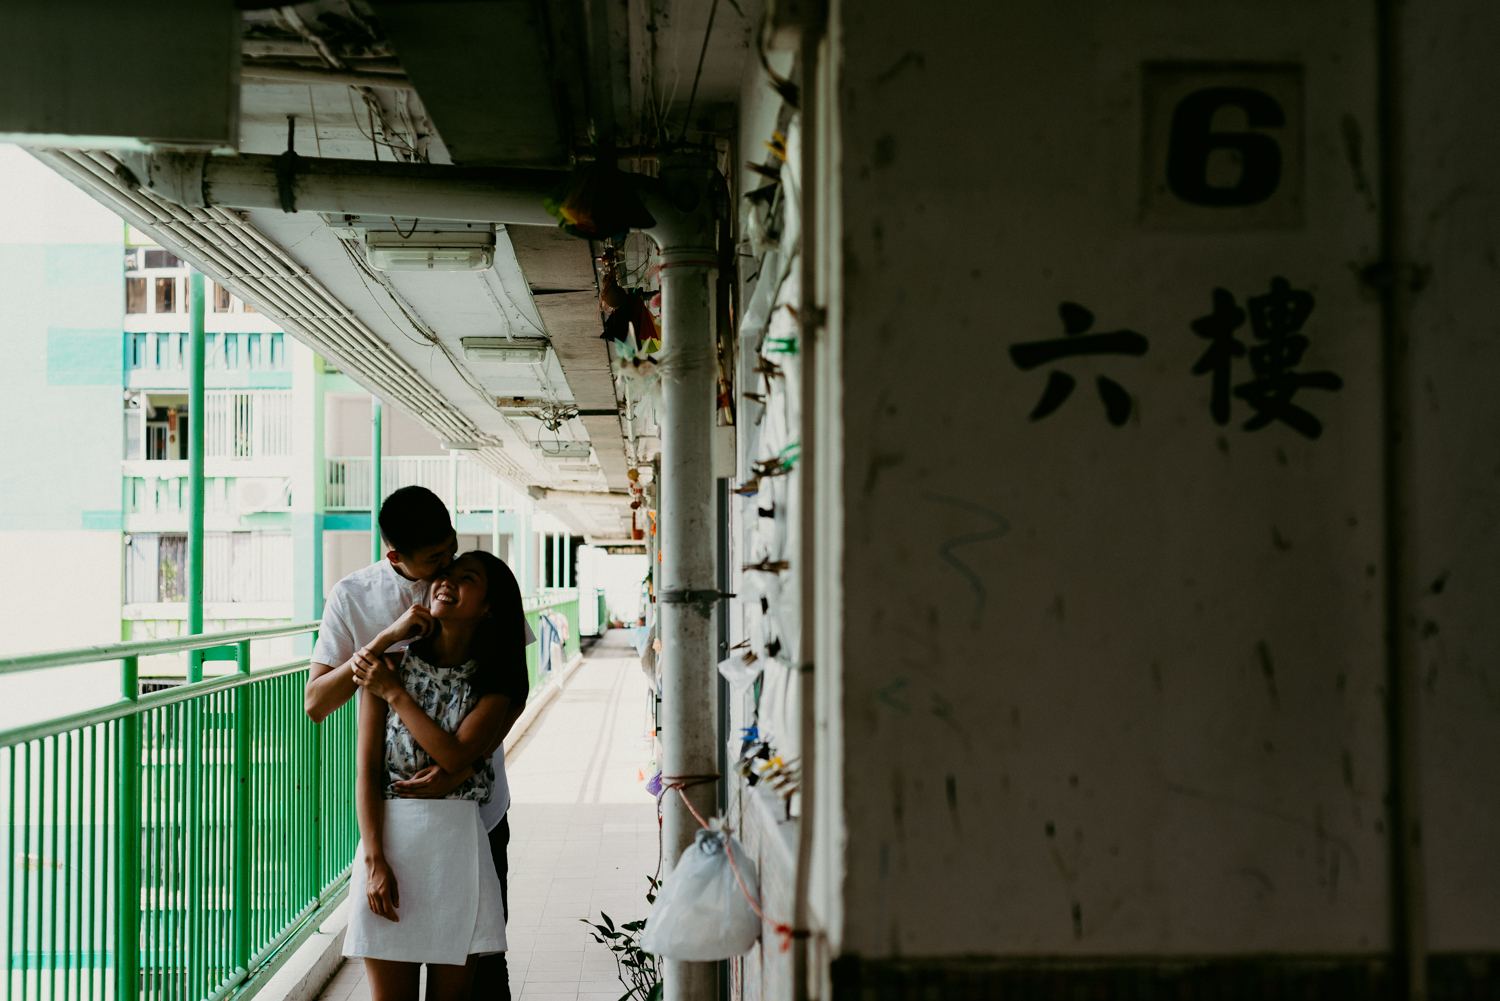 Hong_Kong_Kowloon_Destination_Engagement_Shoot-52.JPG